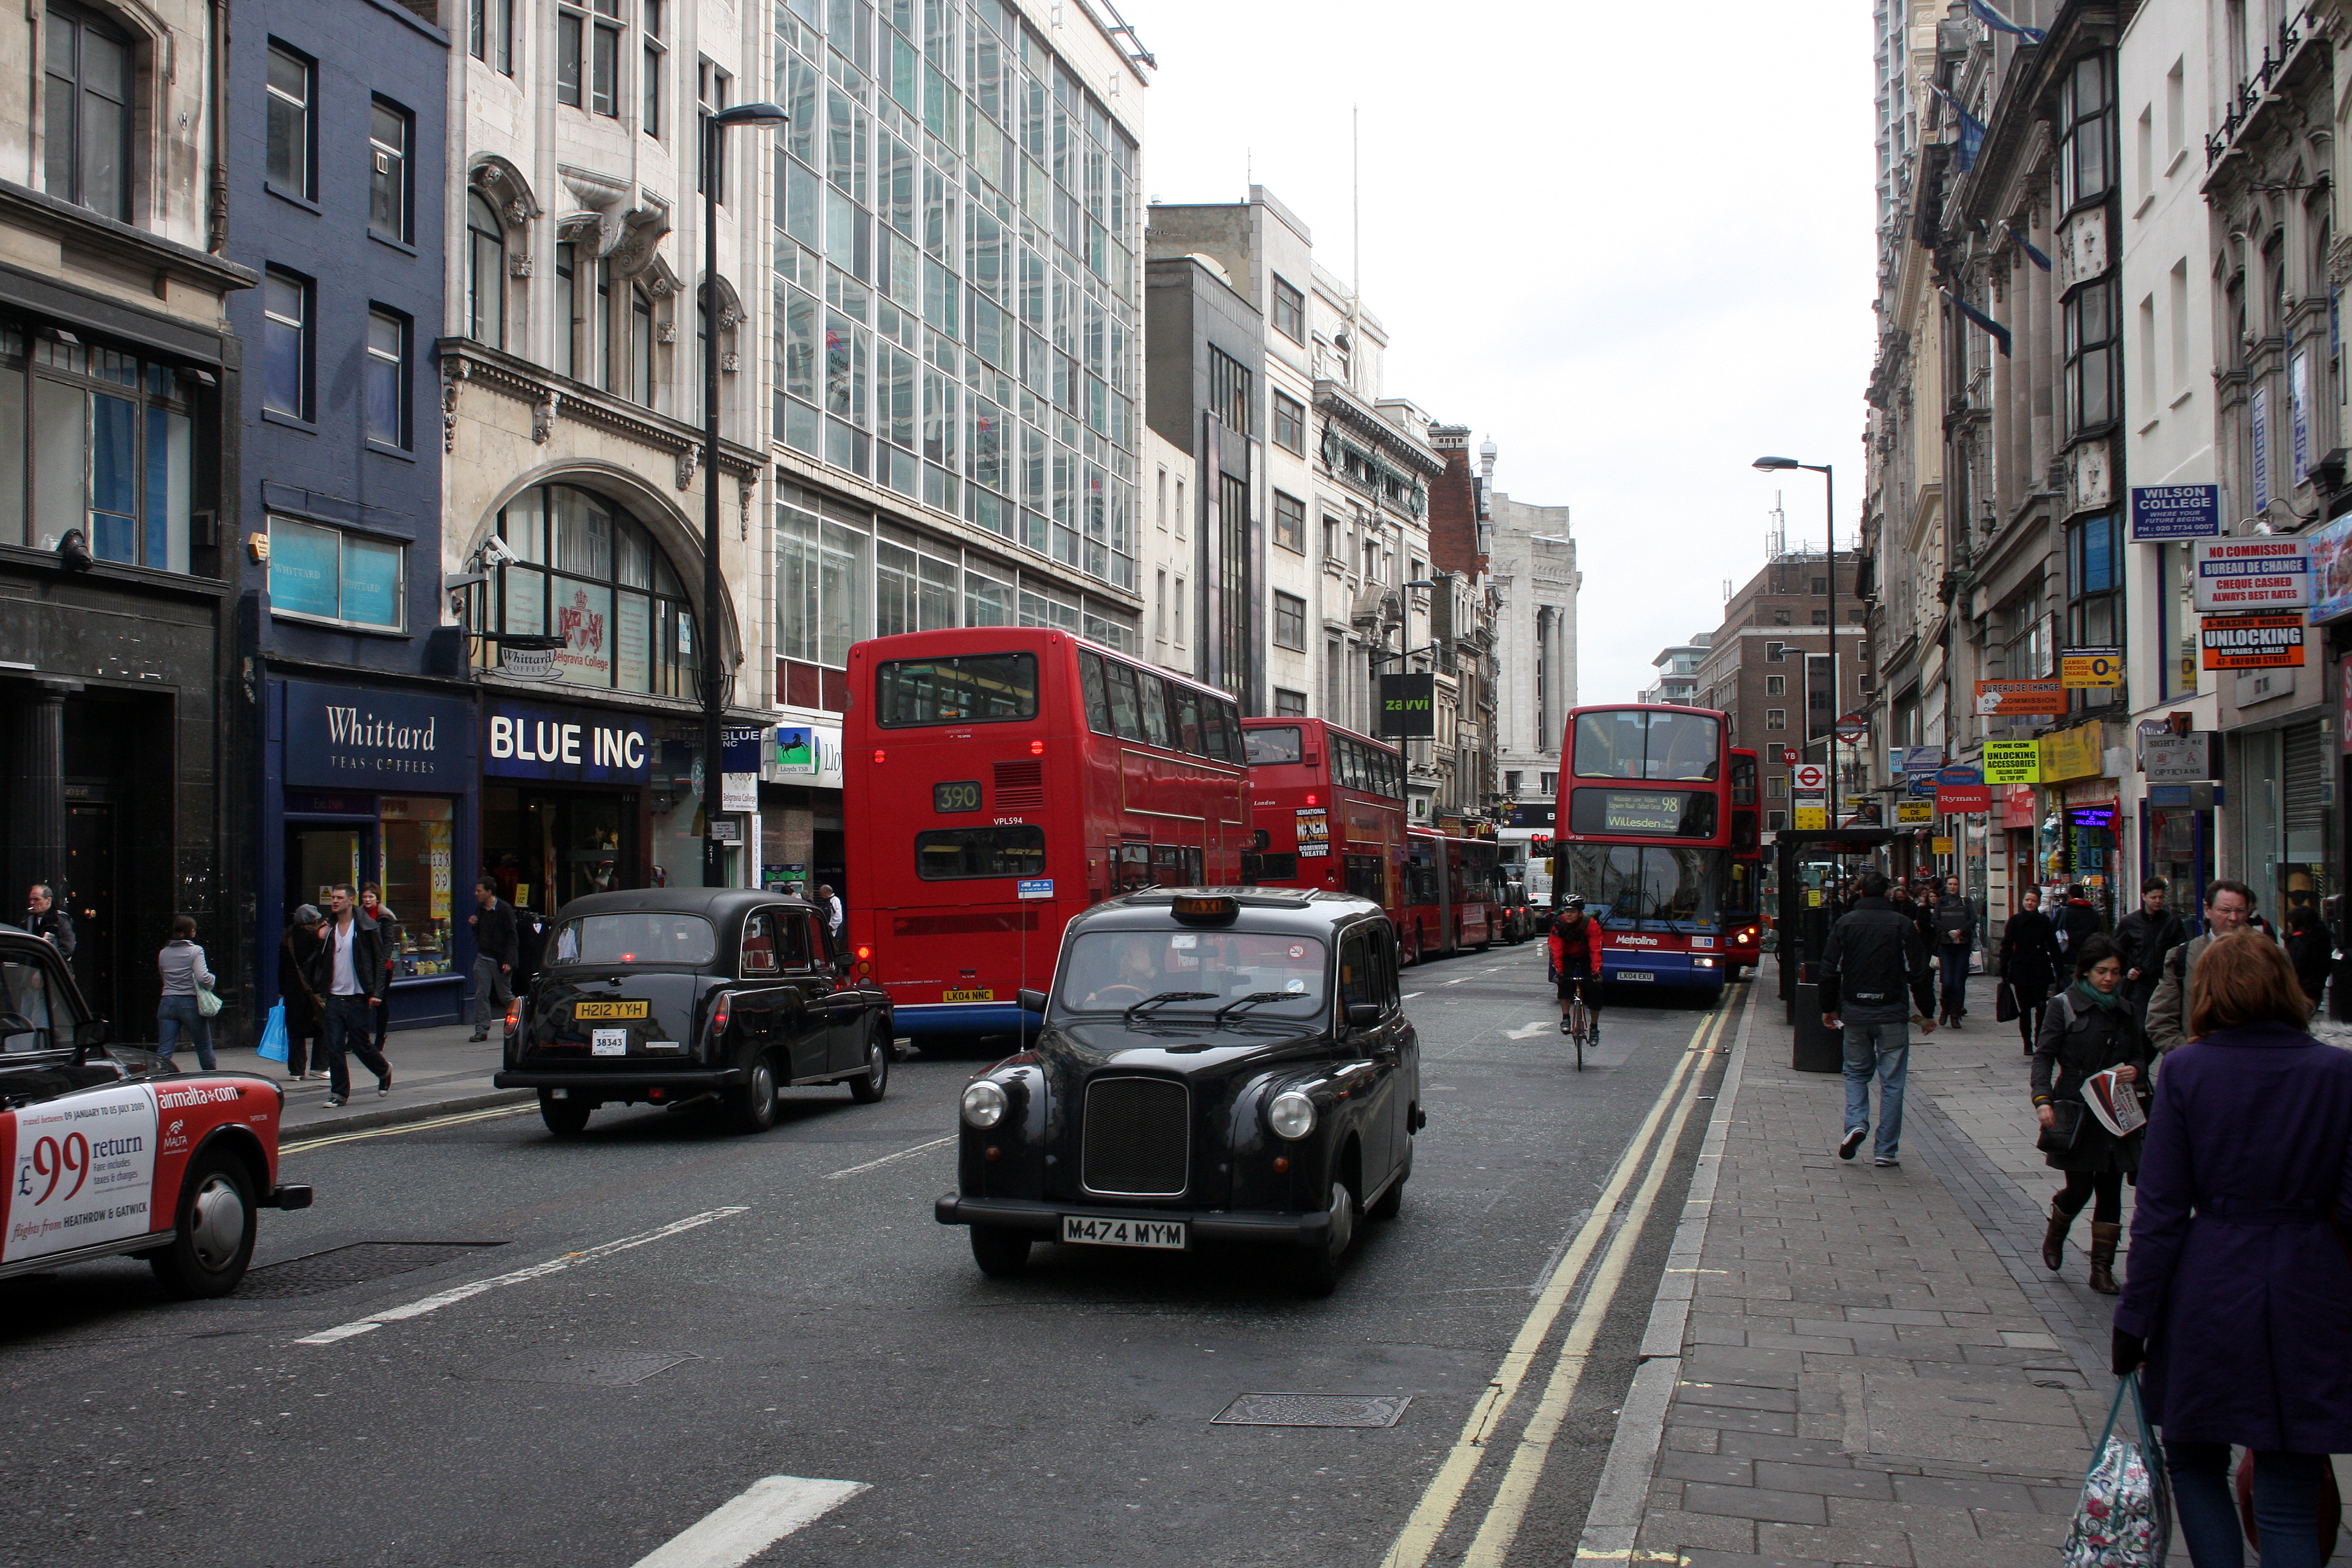 Buses and taxis on a London street.